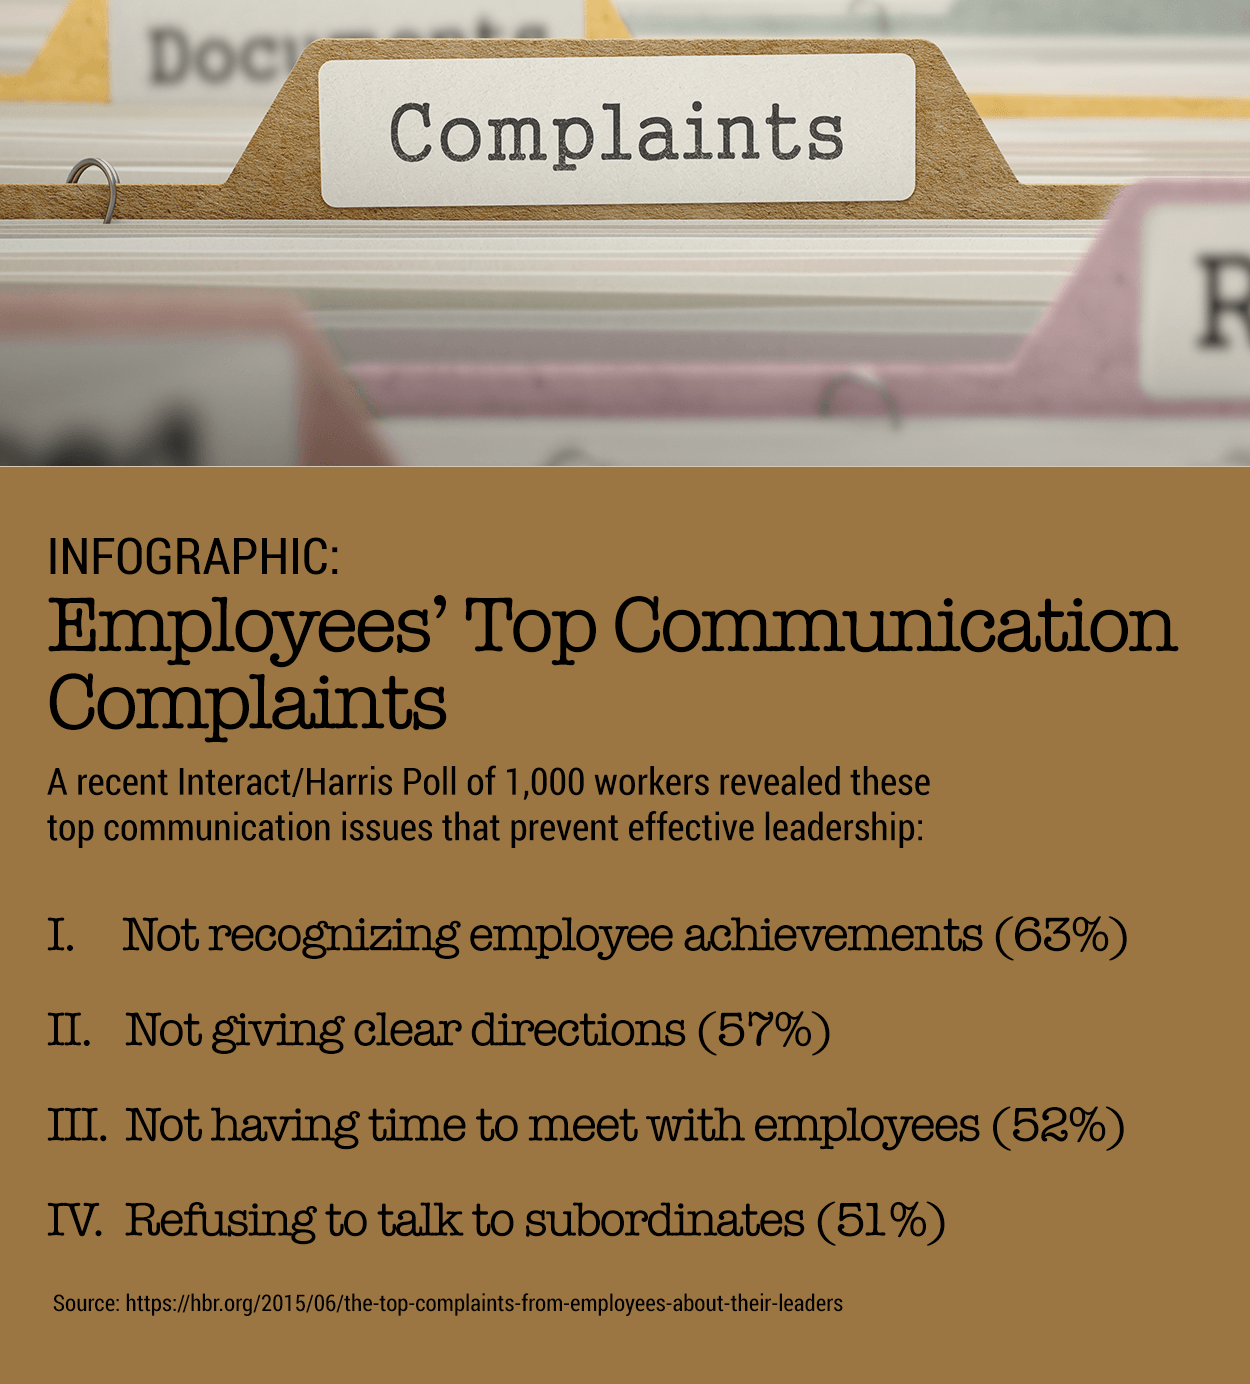 INFOGRAPHIC: Employees' Top Communication Complaints